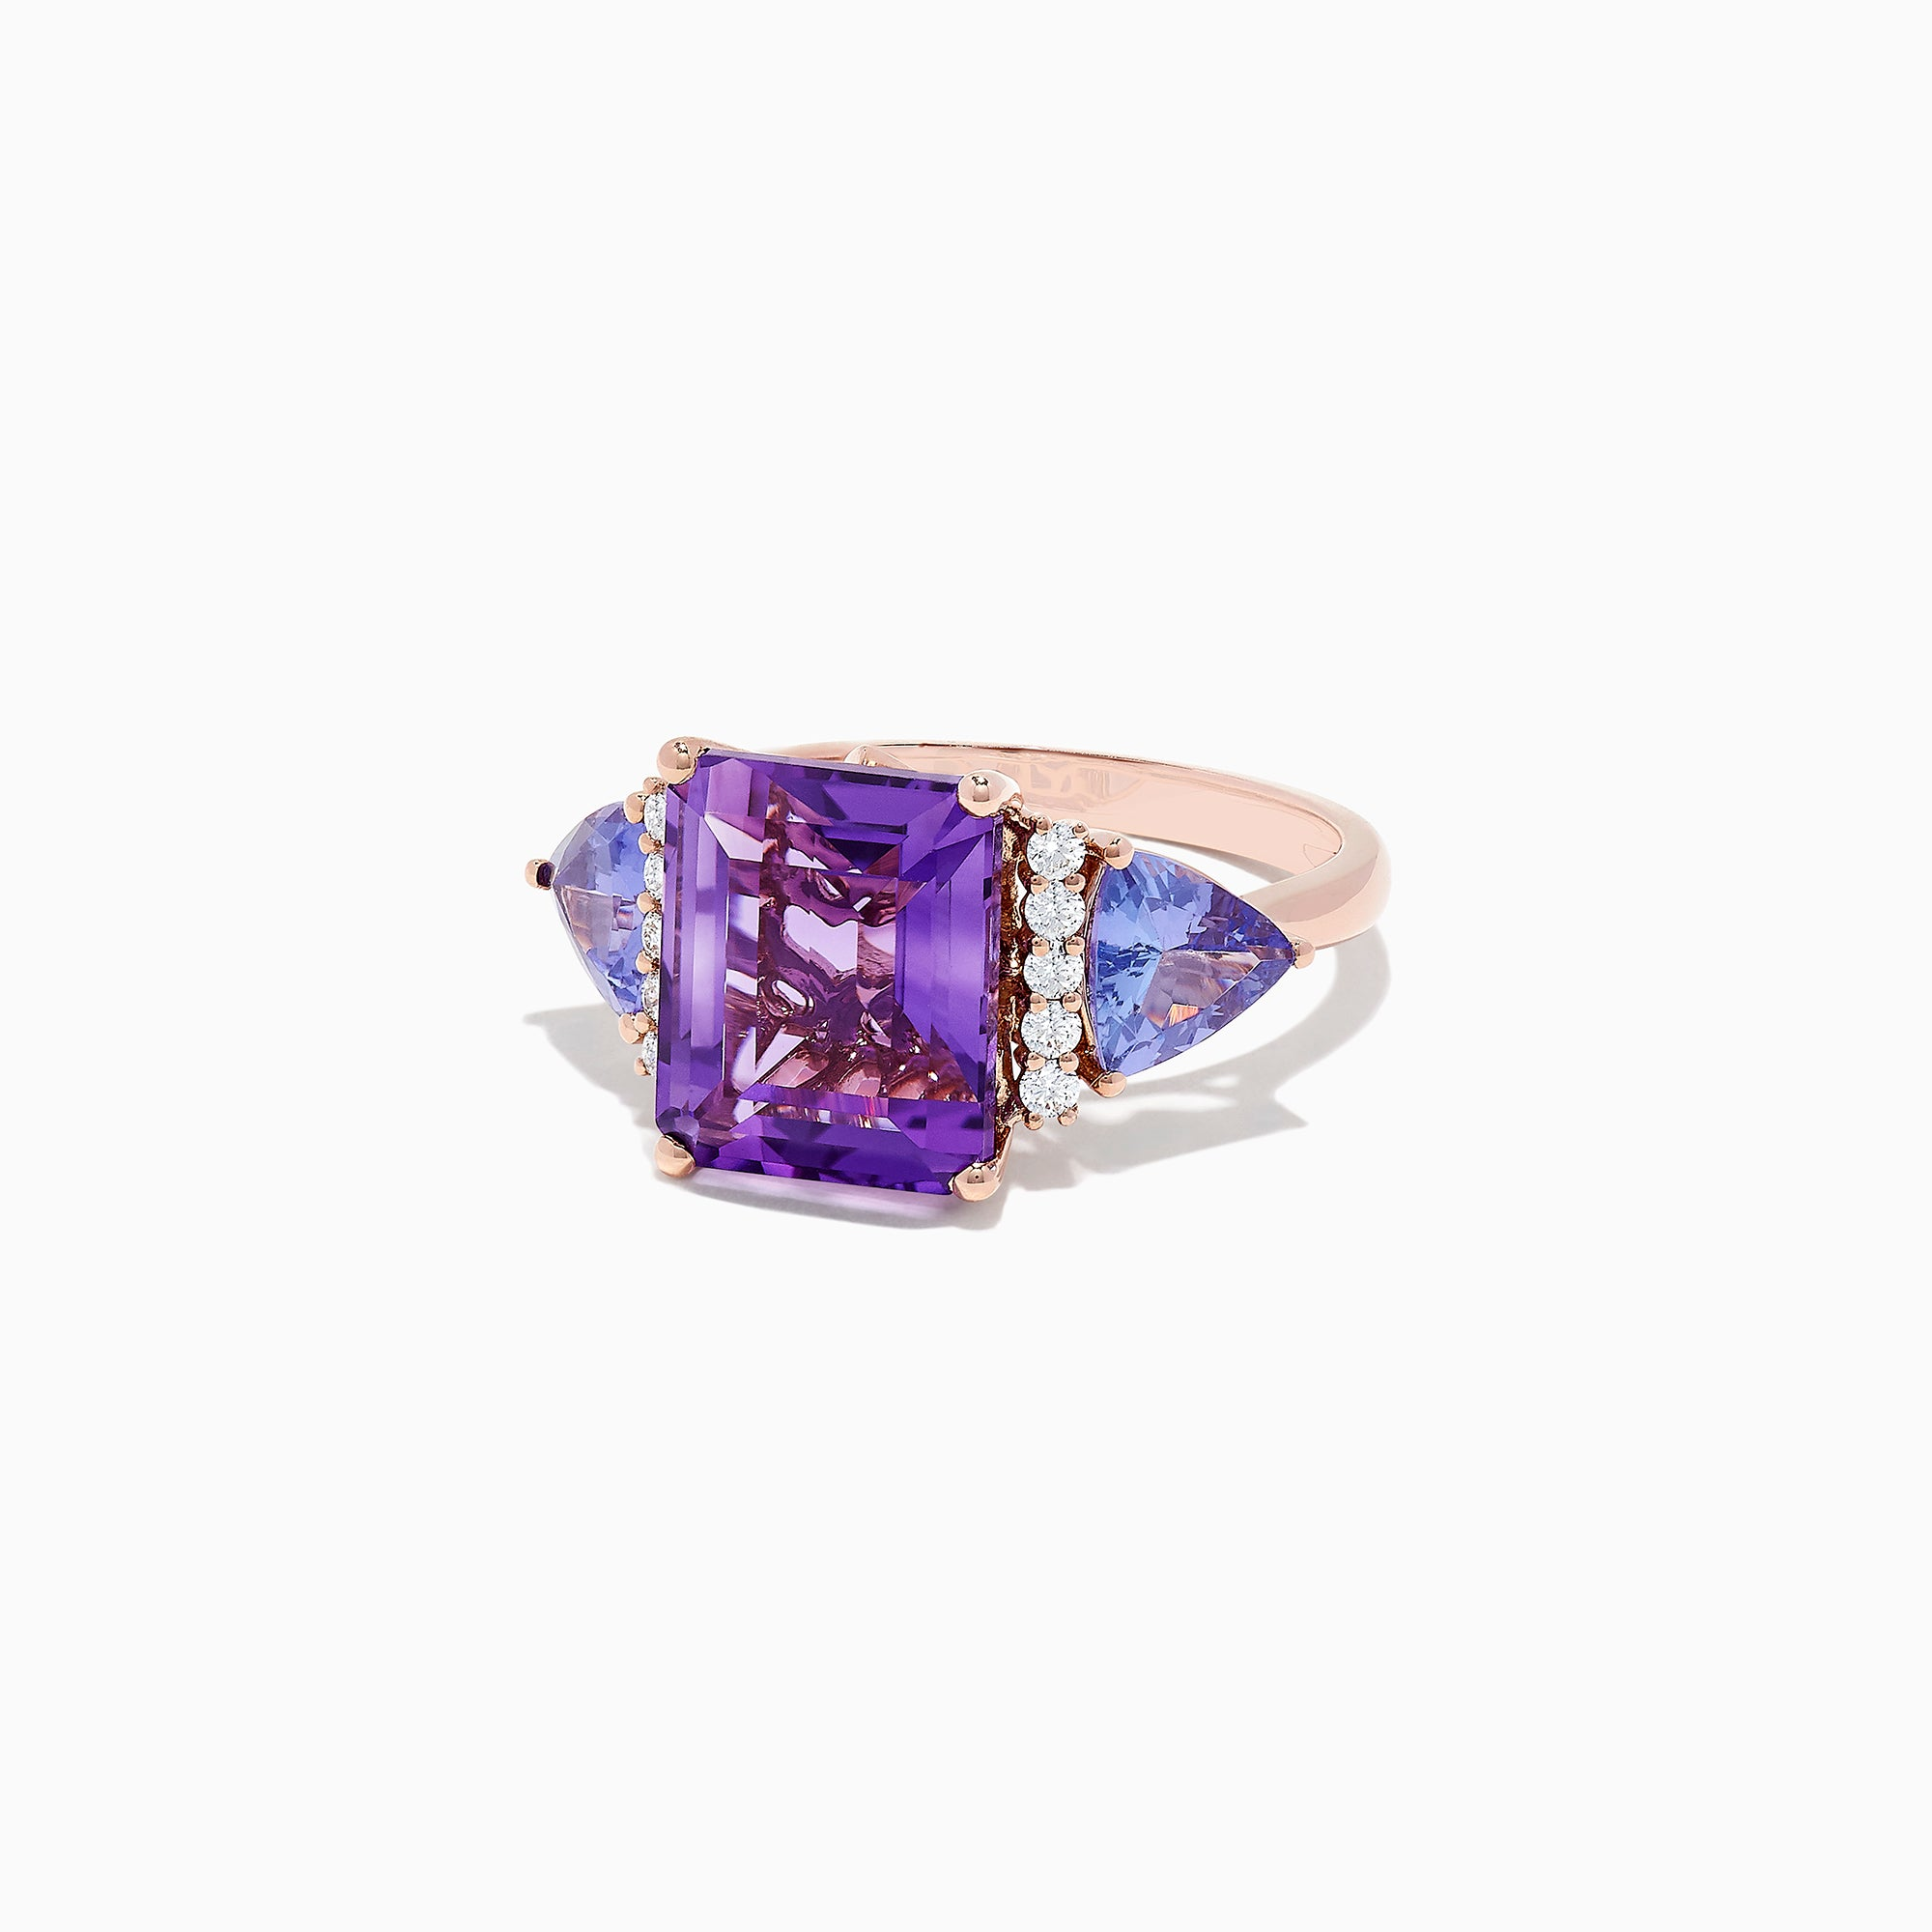 Effy 14K Rose Gold Amethyst, Tanzanite and Diamond Ring, 7.49 TCW